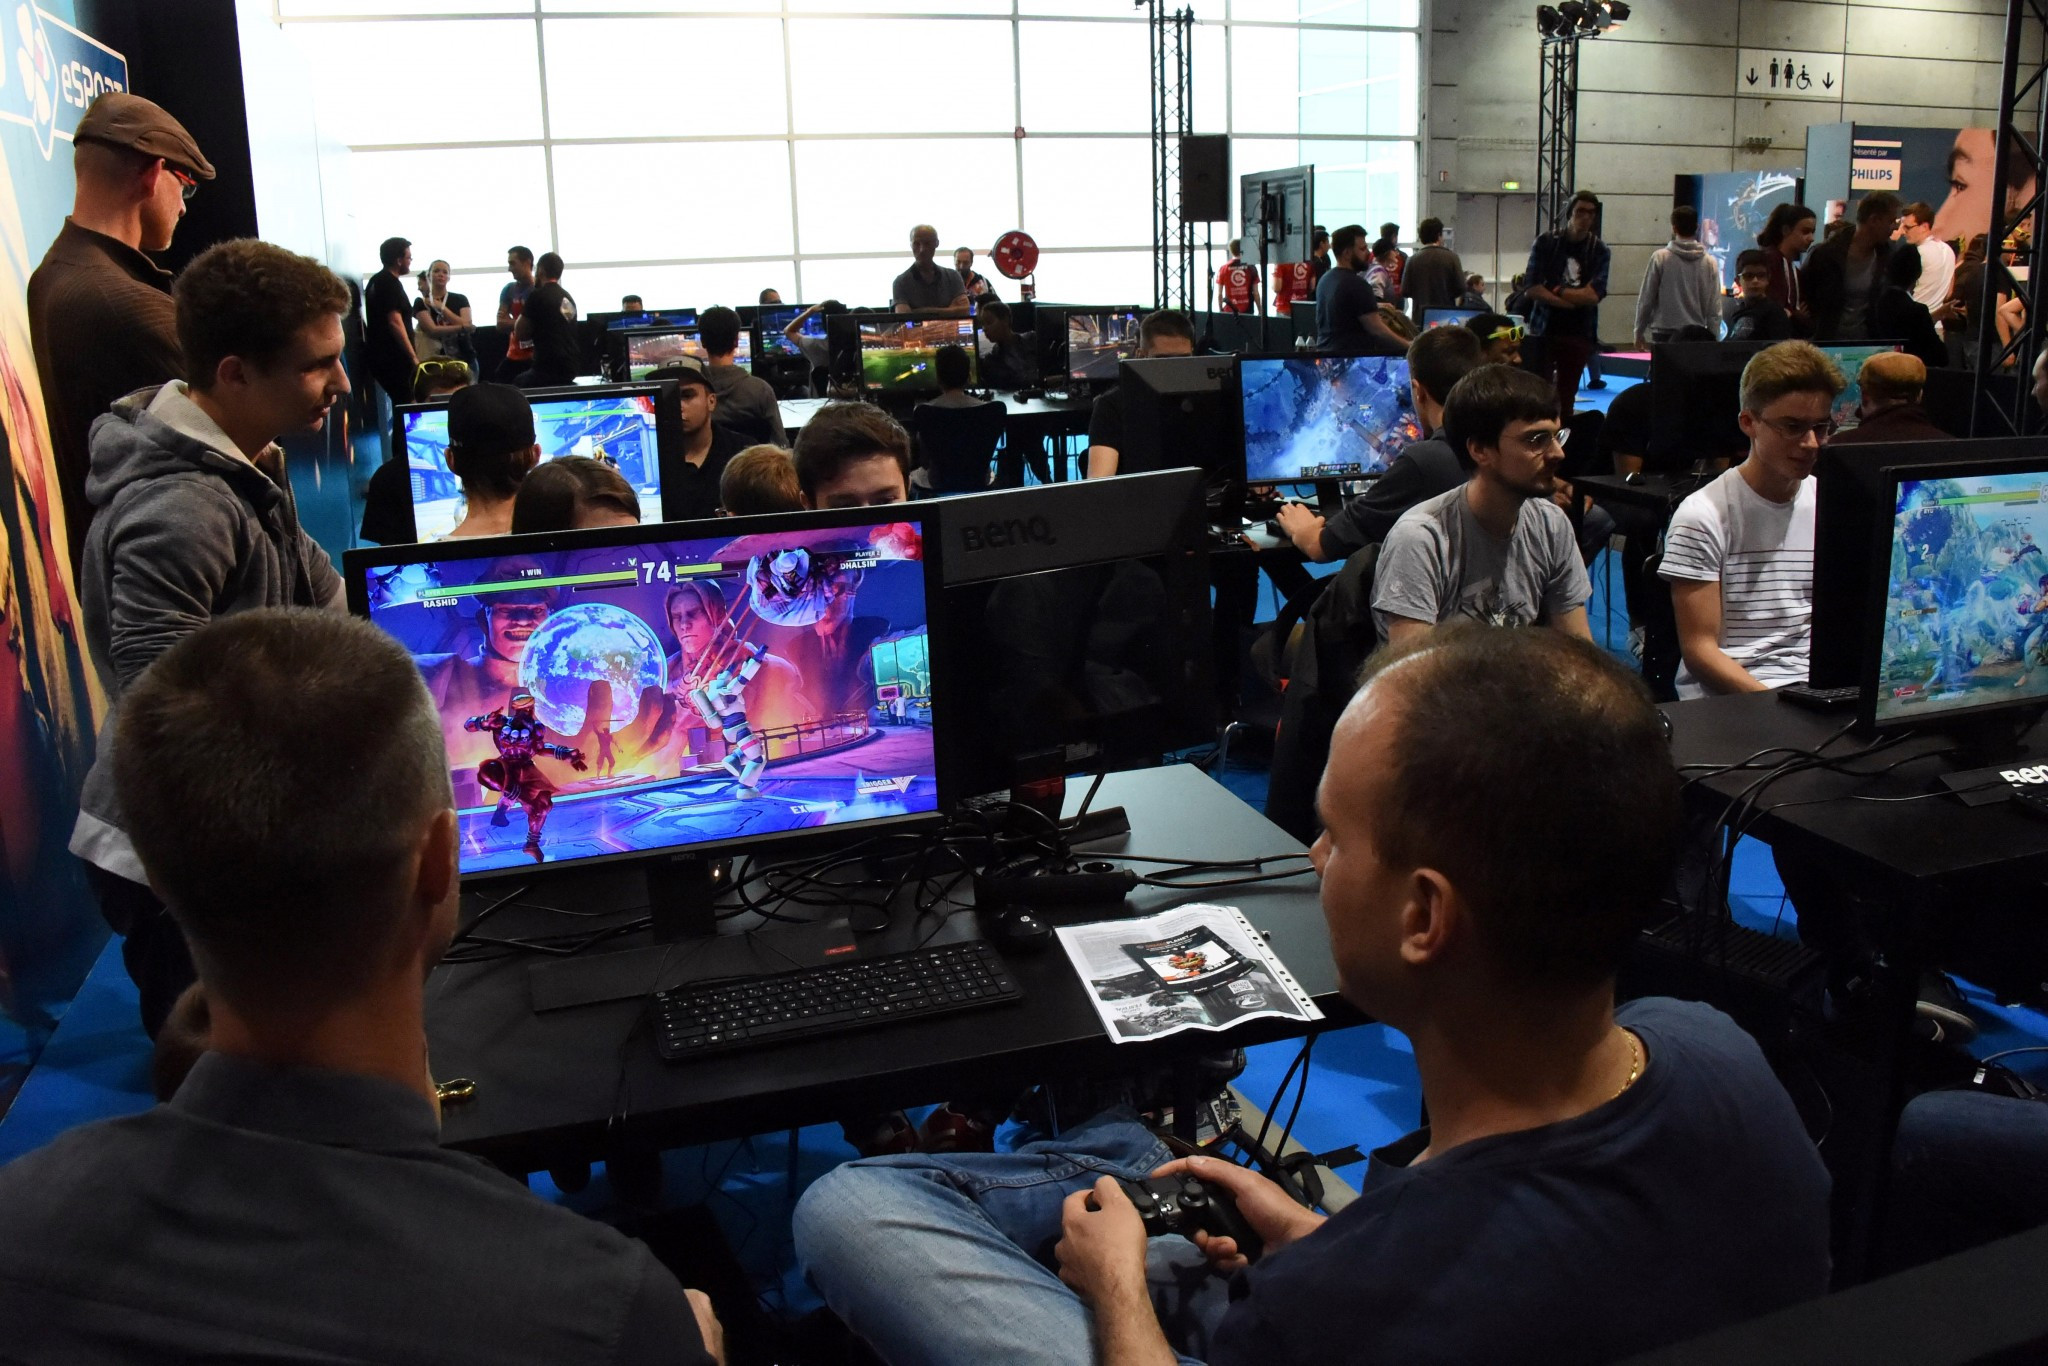 Ashgabat 2017 reveal number of finalists for e-sports event